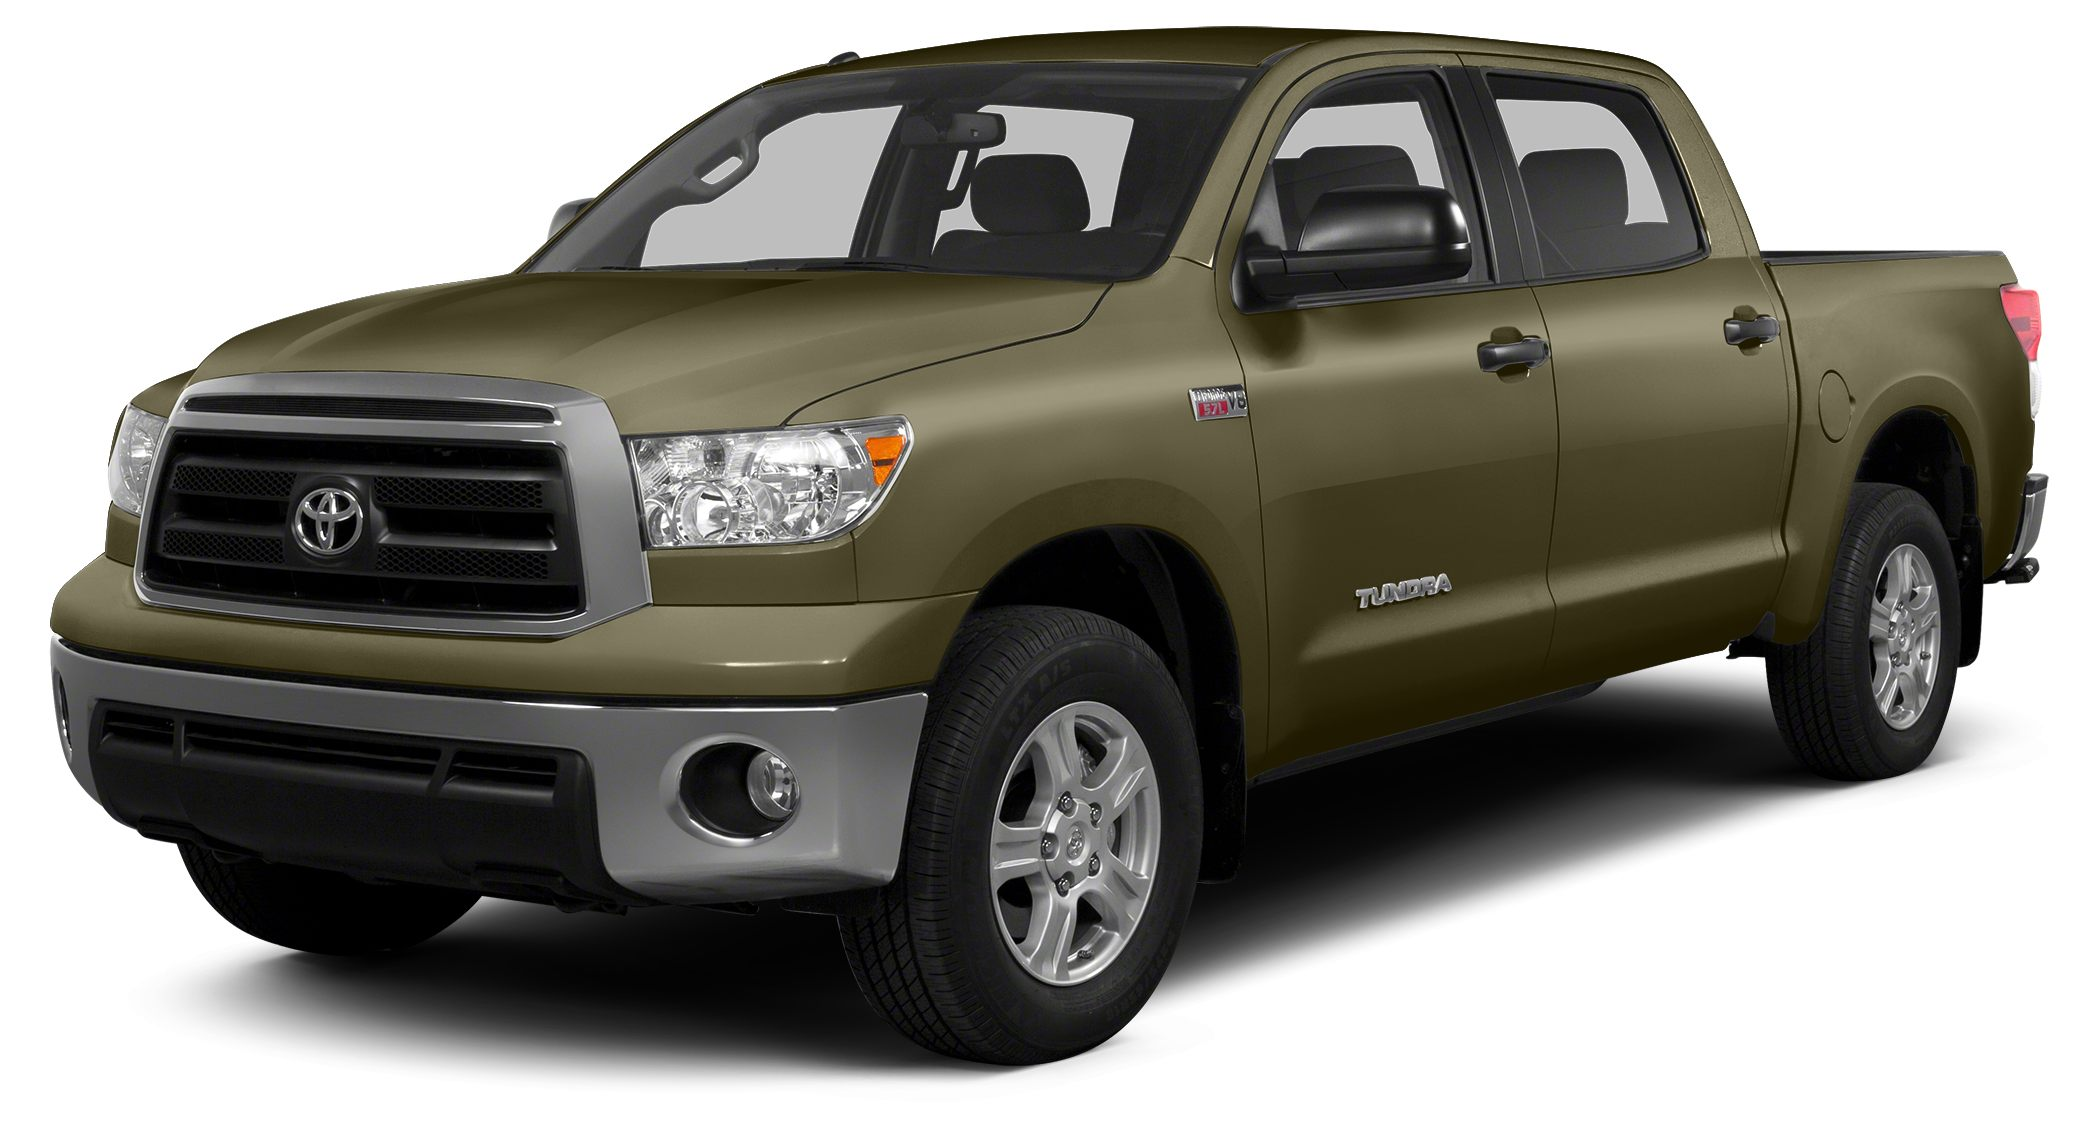 2013 Toyota Tundra Grade This outstanding example of a 2013 Toyota Tundra 4WD Truck CrewMax 57L F